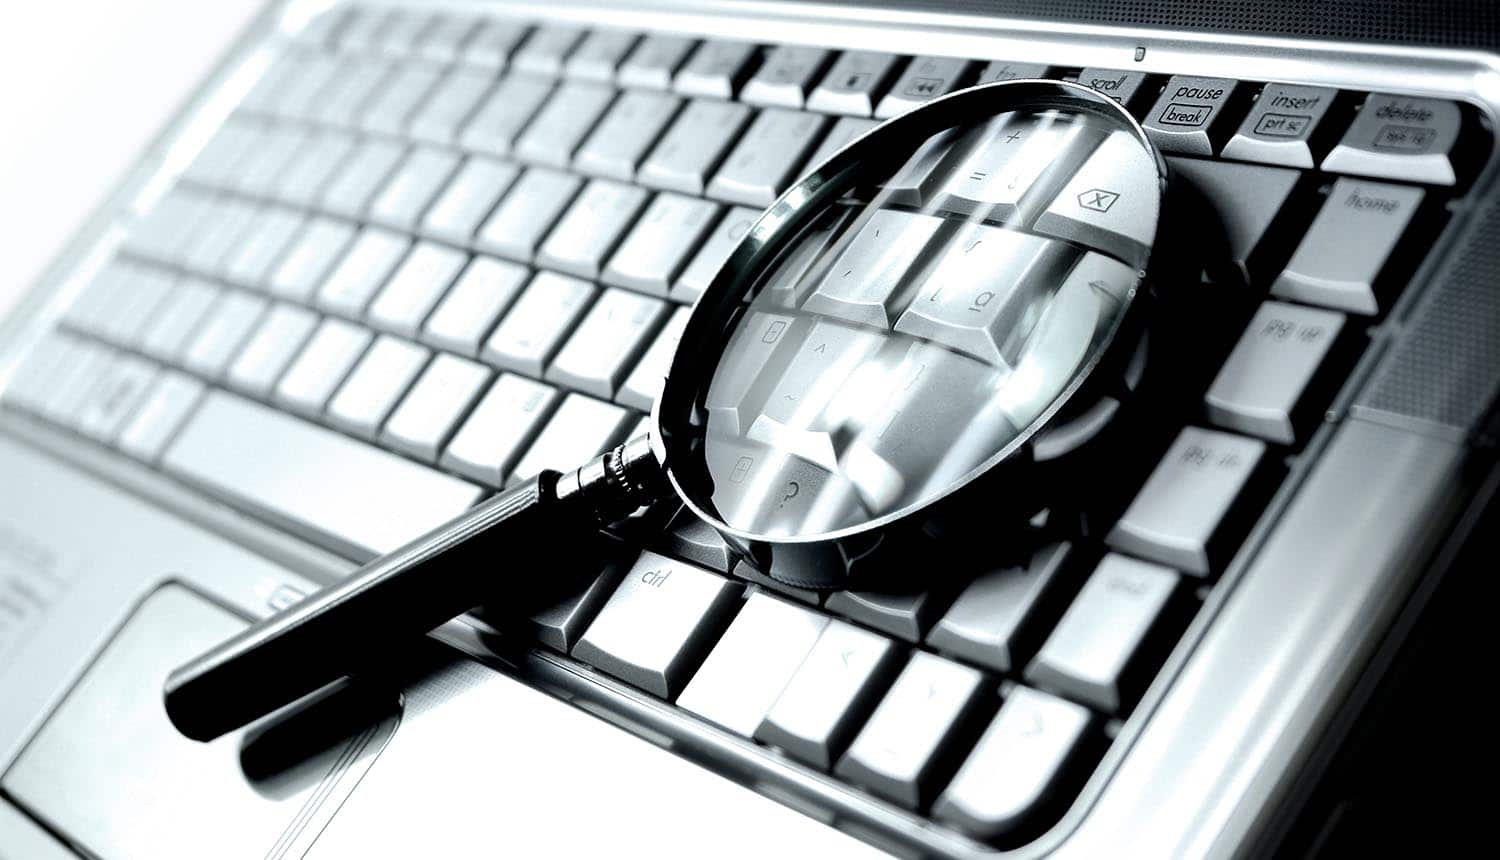 Magnifying glass on laptop keyboard showing the adversary attribution approach to fight cybercrime